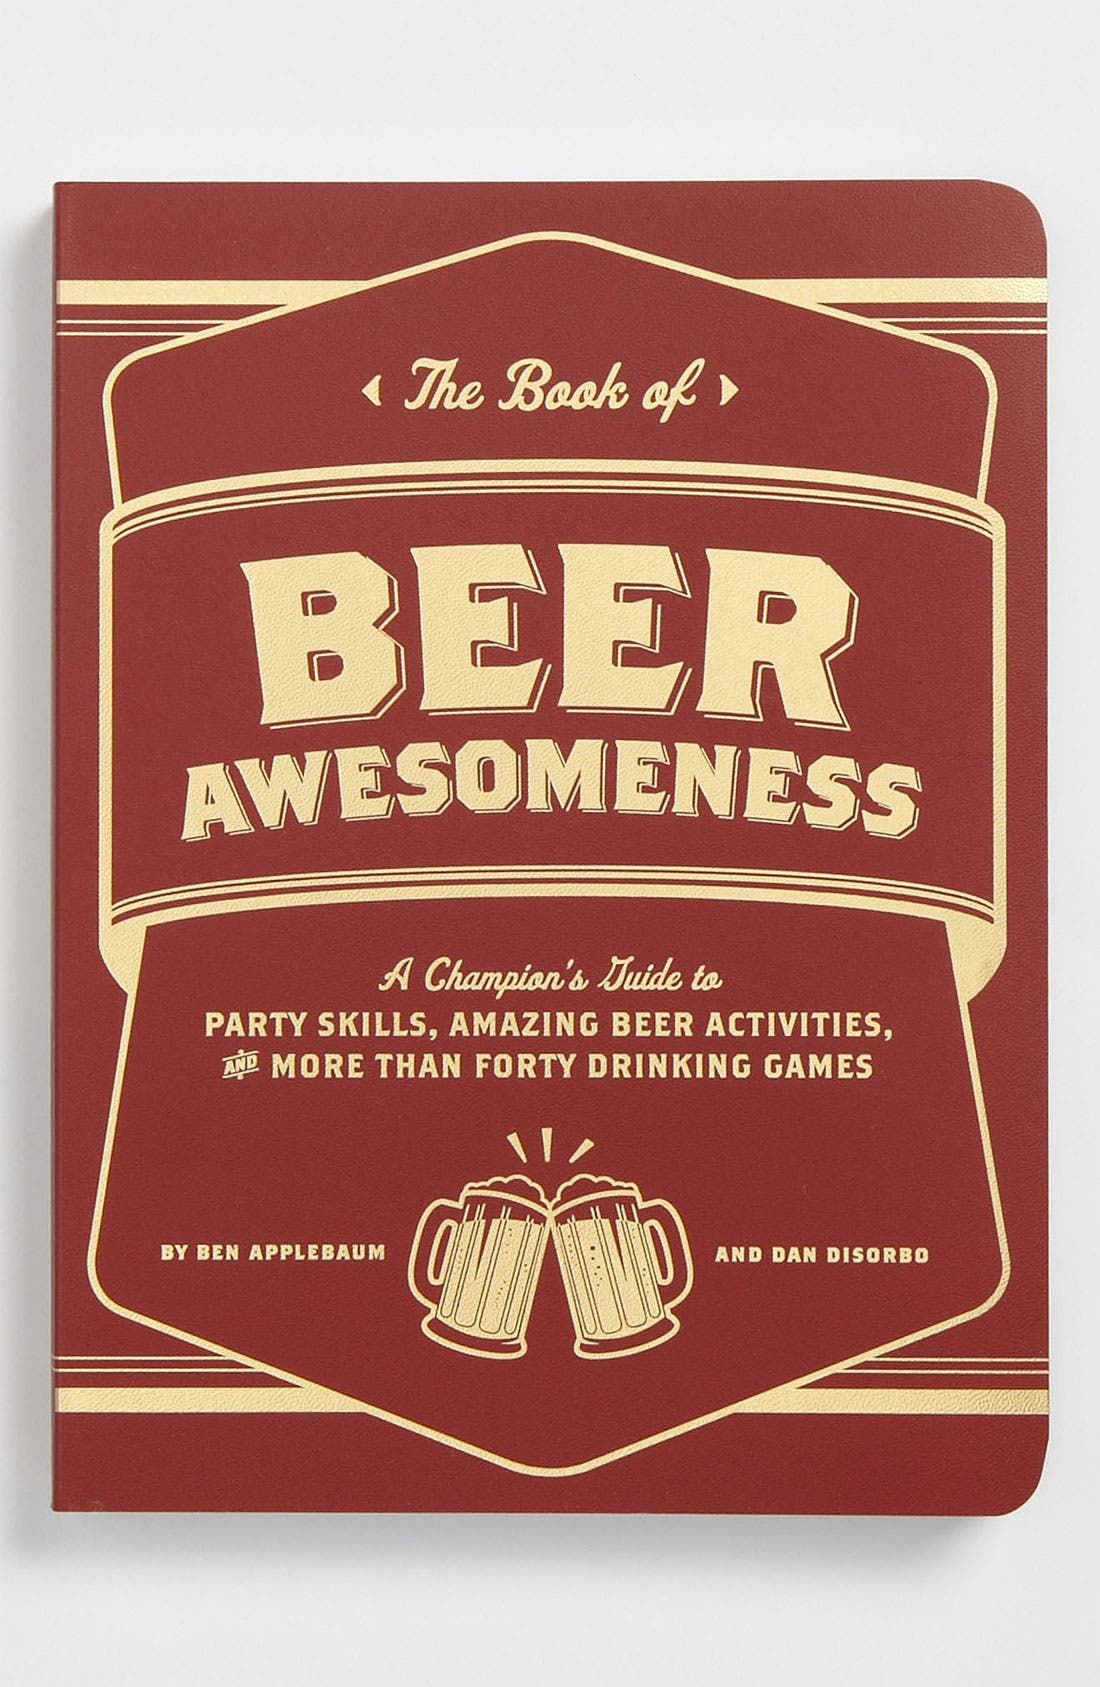 Alternate Image 1 Selected - 'The Book of Beer Awesomeness' Book